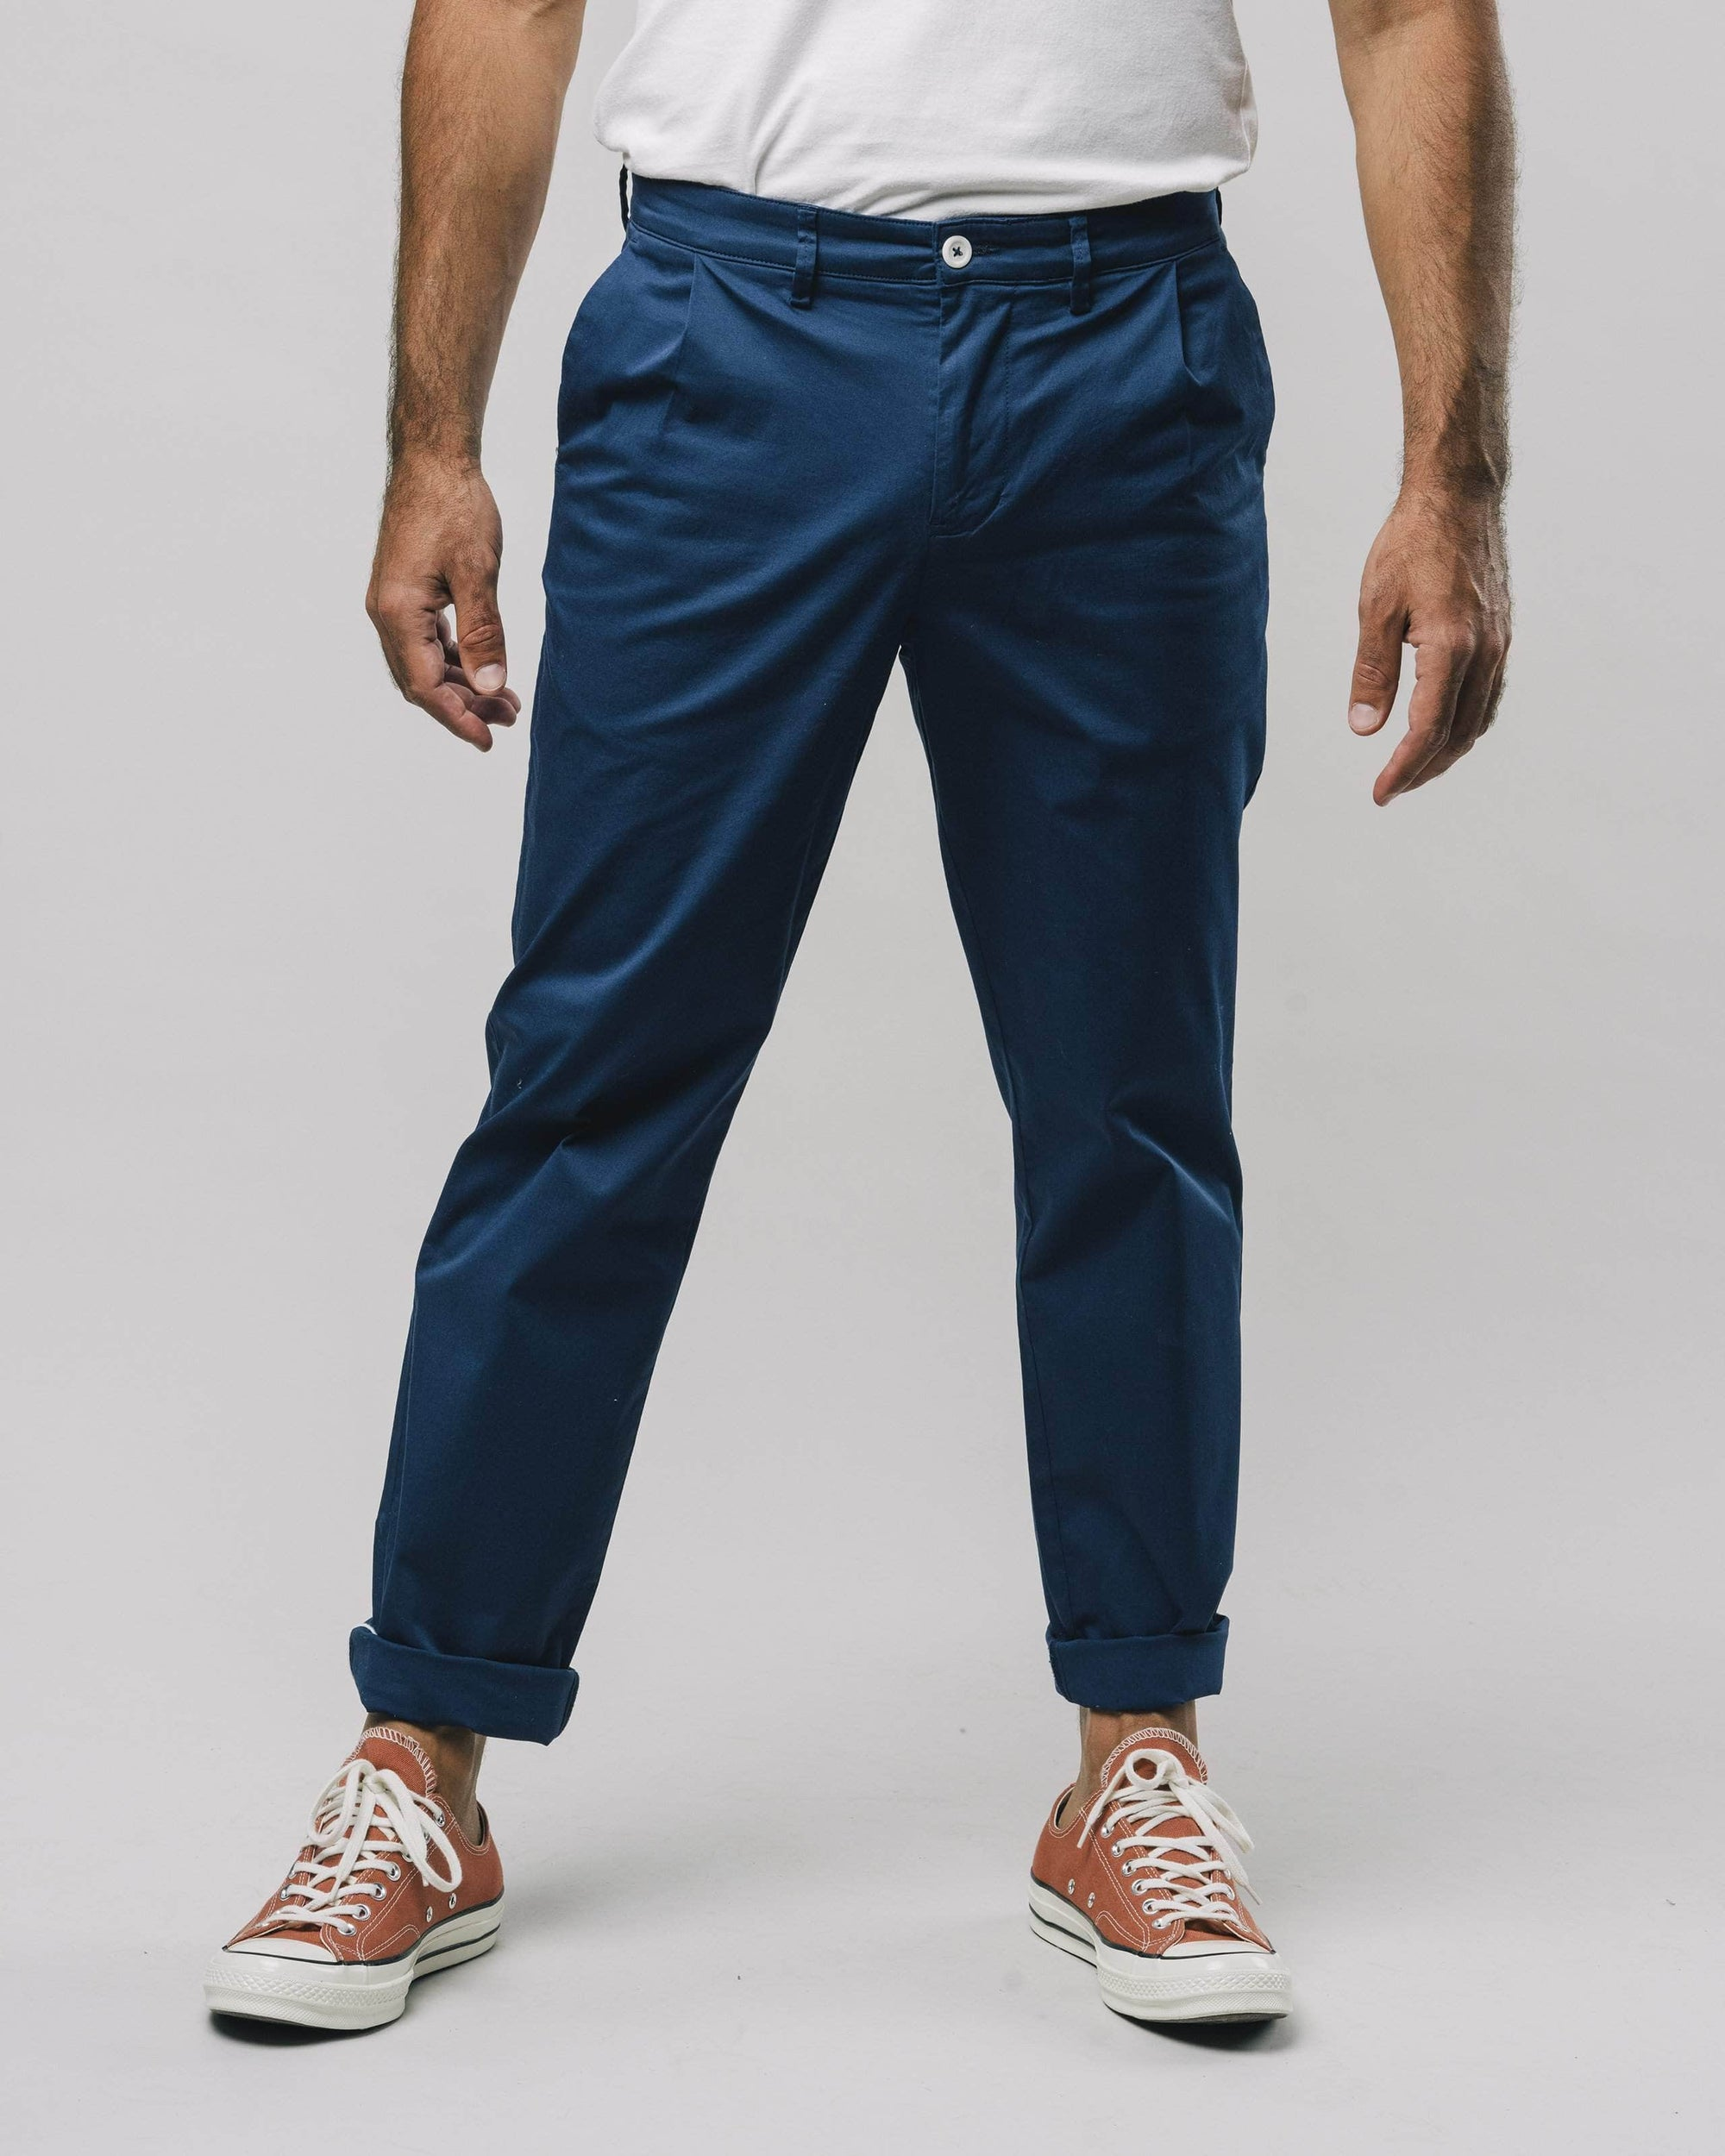 Shop sustainable and fairtrade apparel online. Model Chino pants Navy. Official Brava Fabrics store, worldwide express shipping.